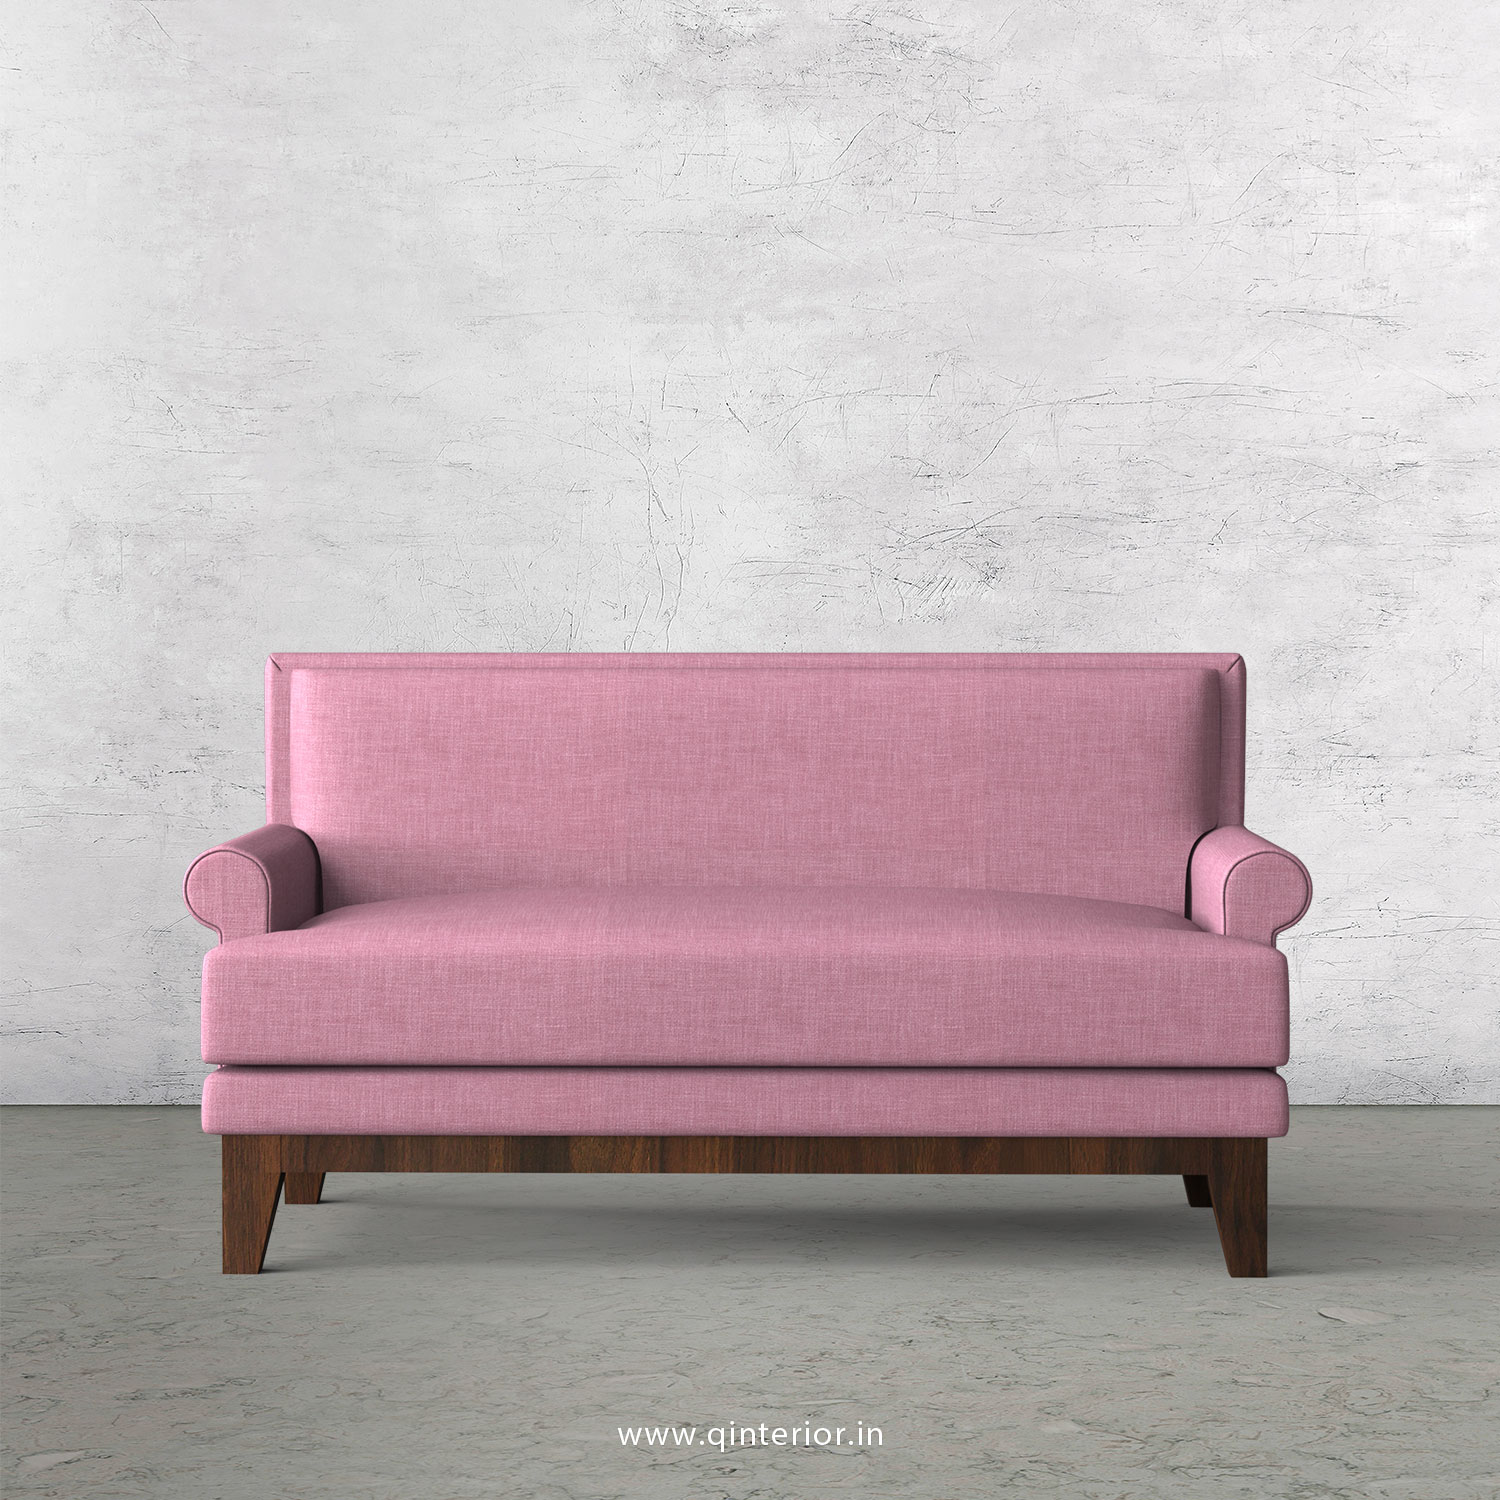 Aviana 2 Seater Sofa in Cotton Plain - SFA001 CP27